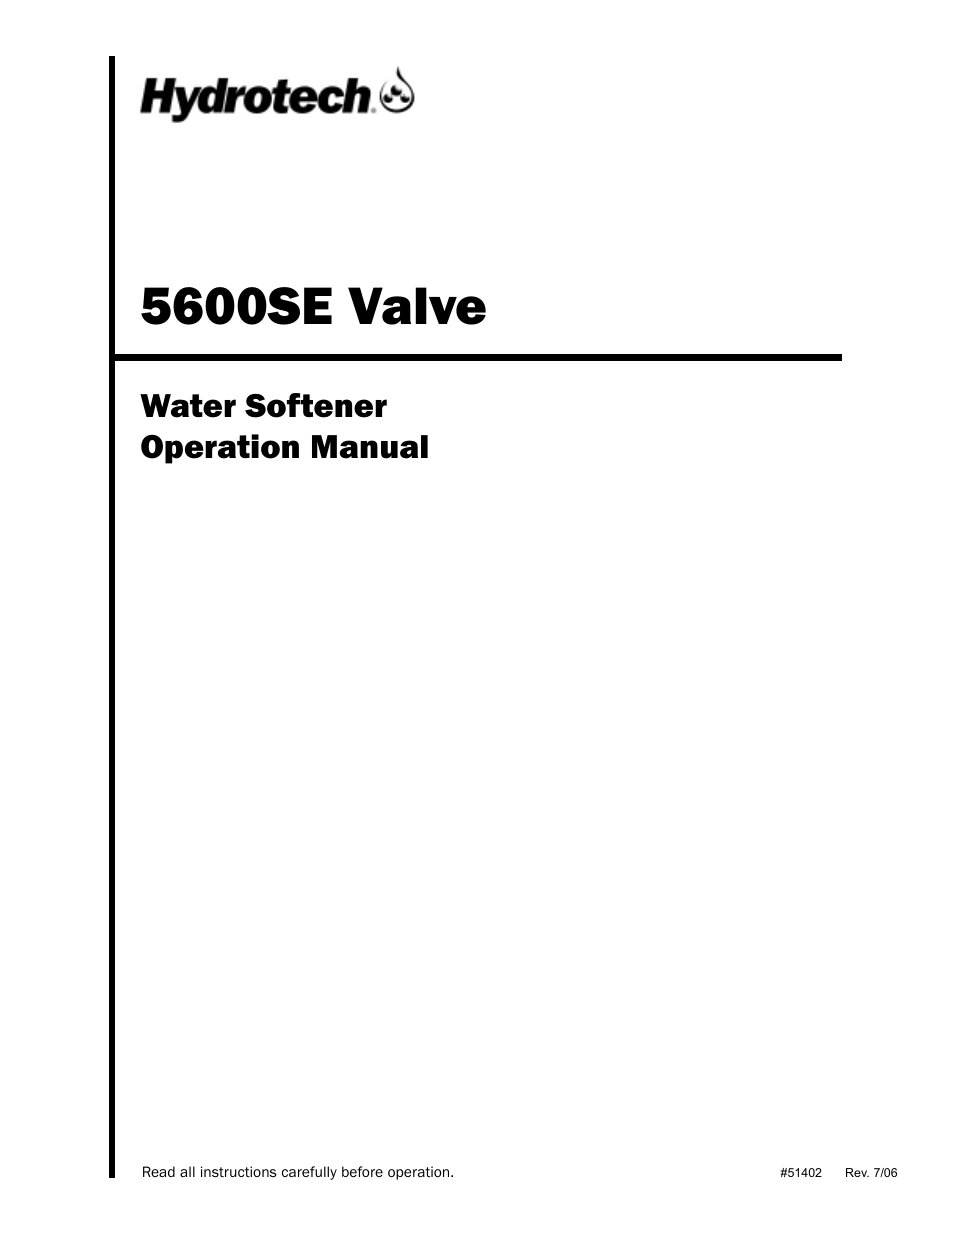 Hydrotech 5600 SE Valve Water Softener Operation Manual